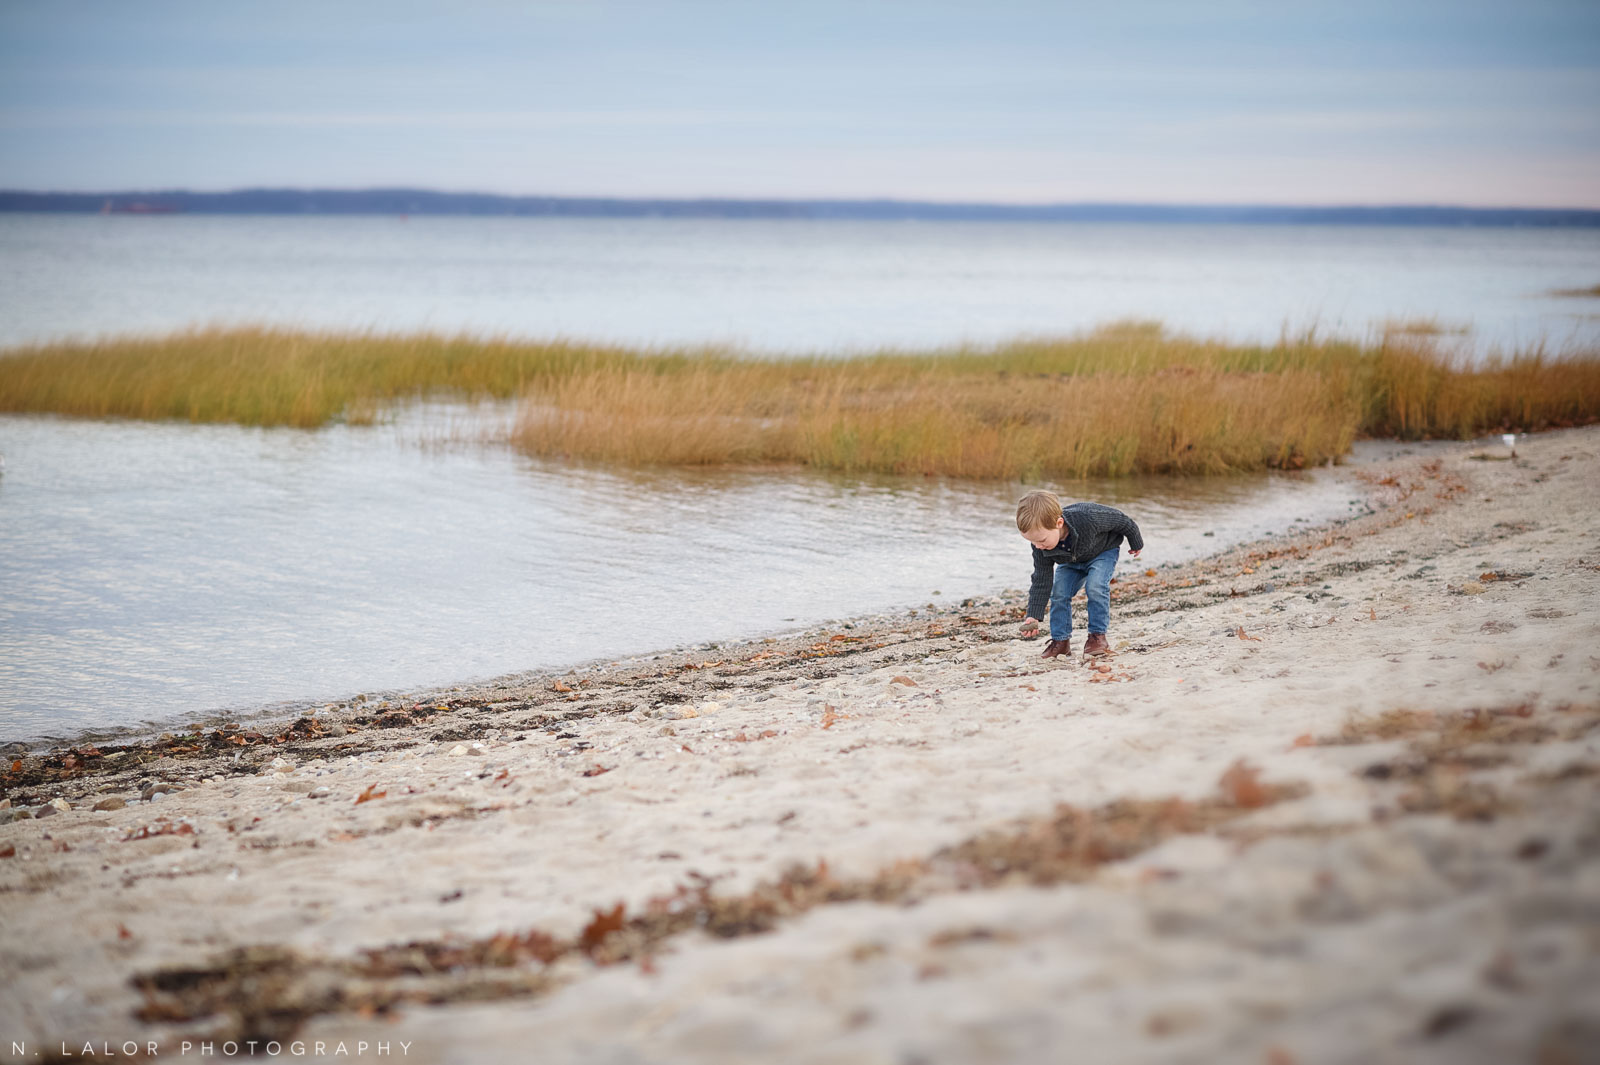 nlalor-photography-120613-styled-boy-winter-beach-session-old-greenwich-3.jpg